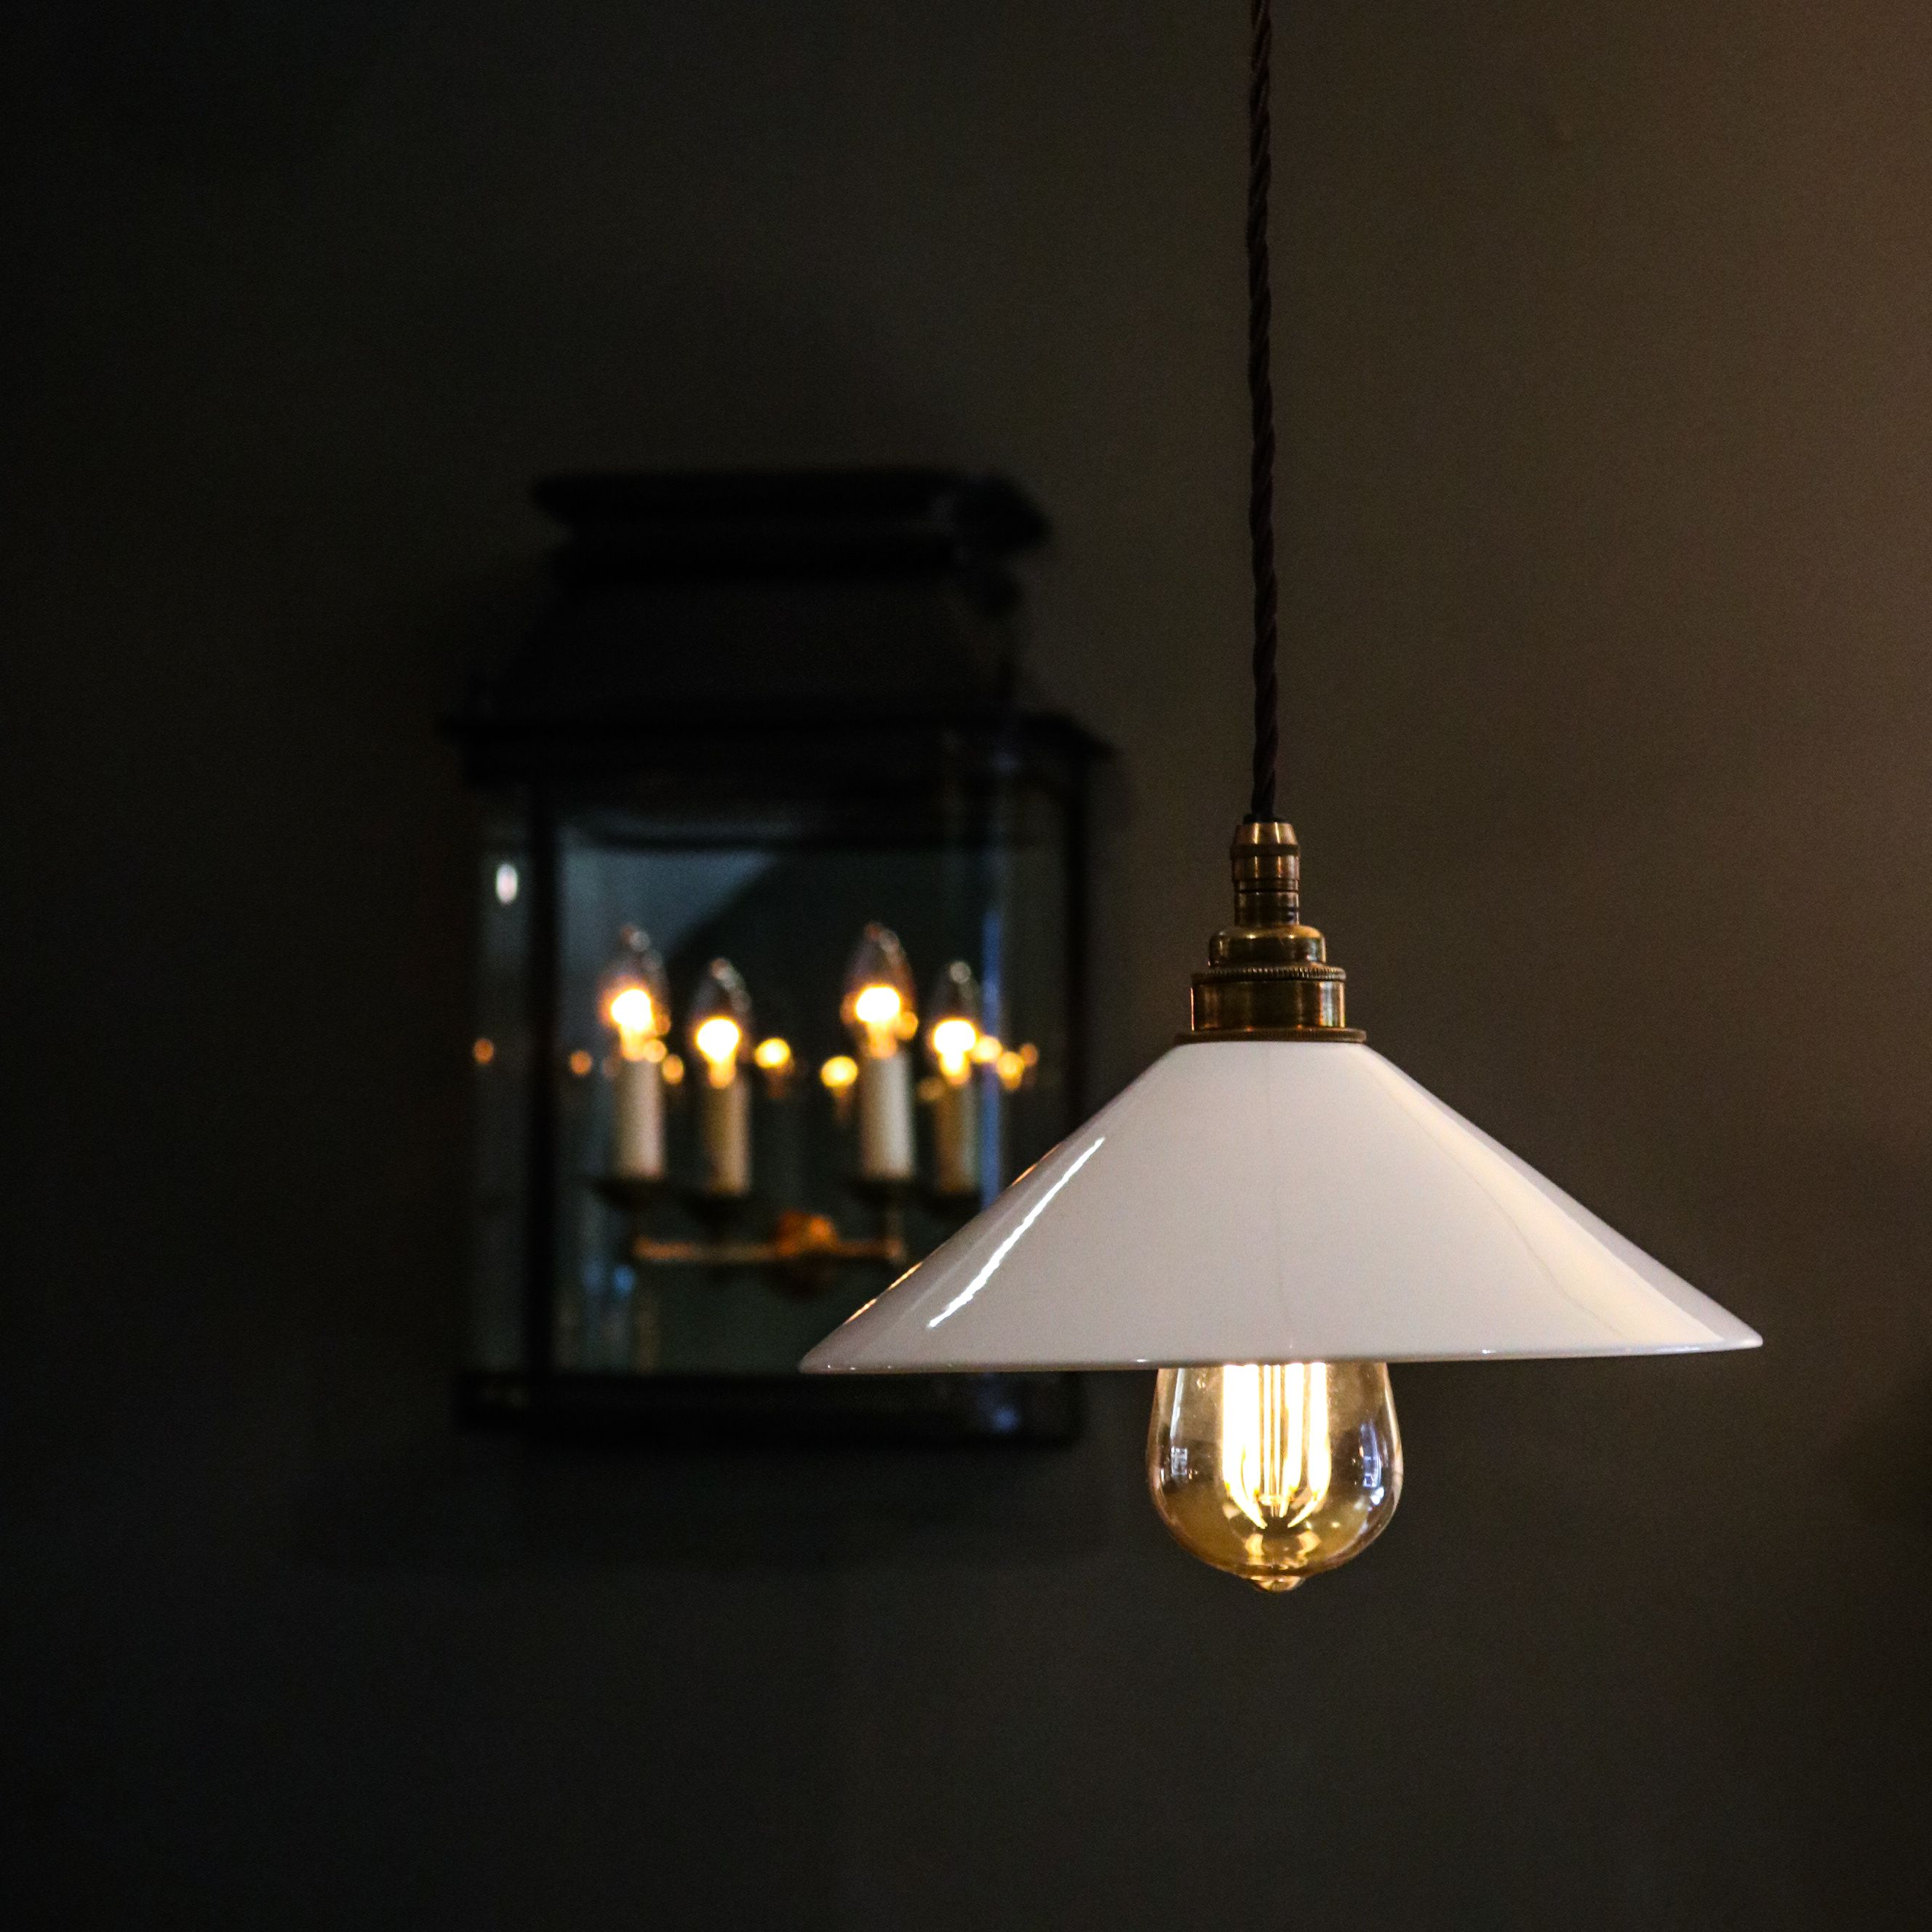 The margot wall light and the hanging kick light with glass coolie